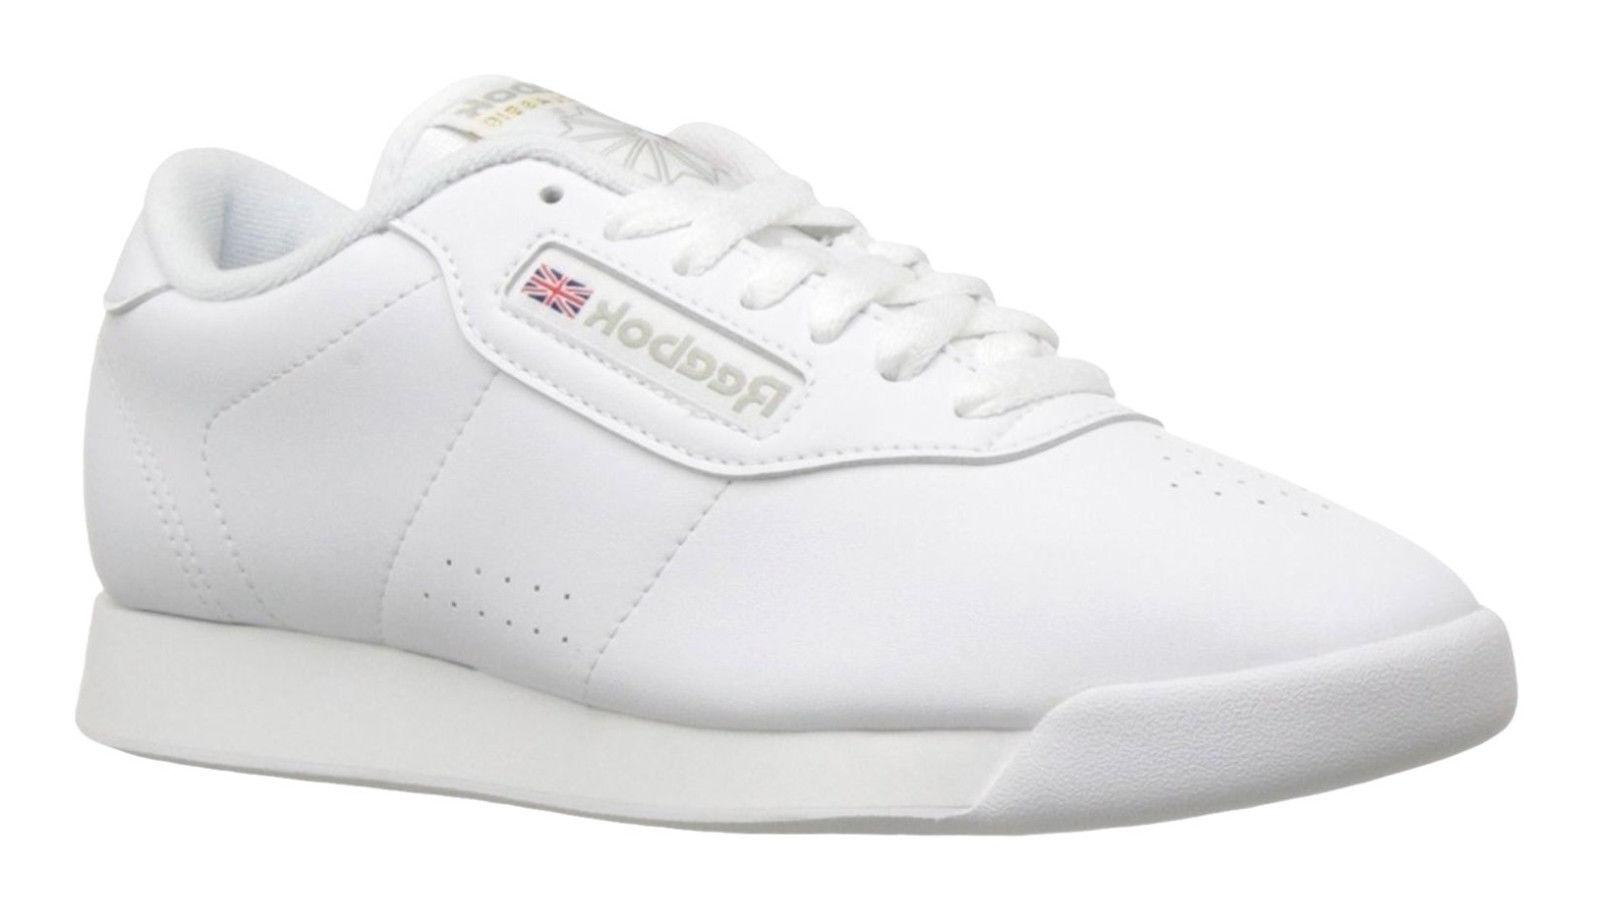 Reebok Classic Princess White Womens Running Tennis Shoes